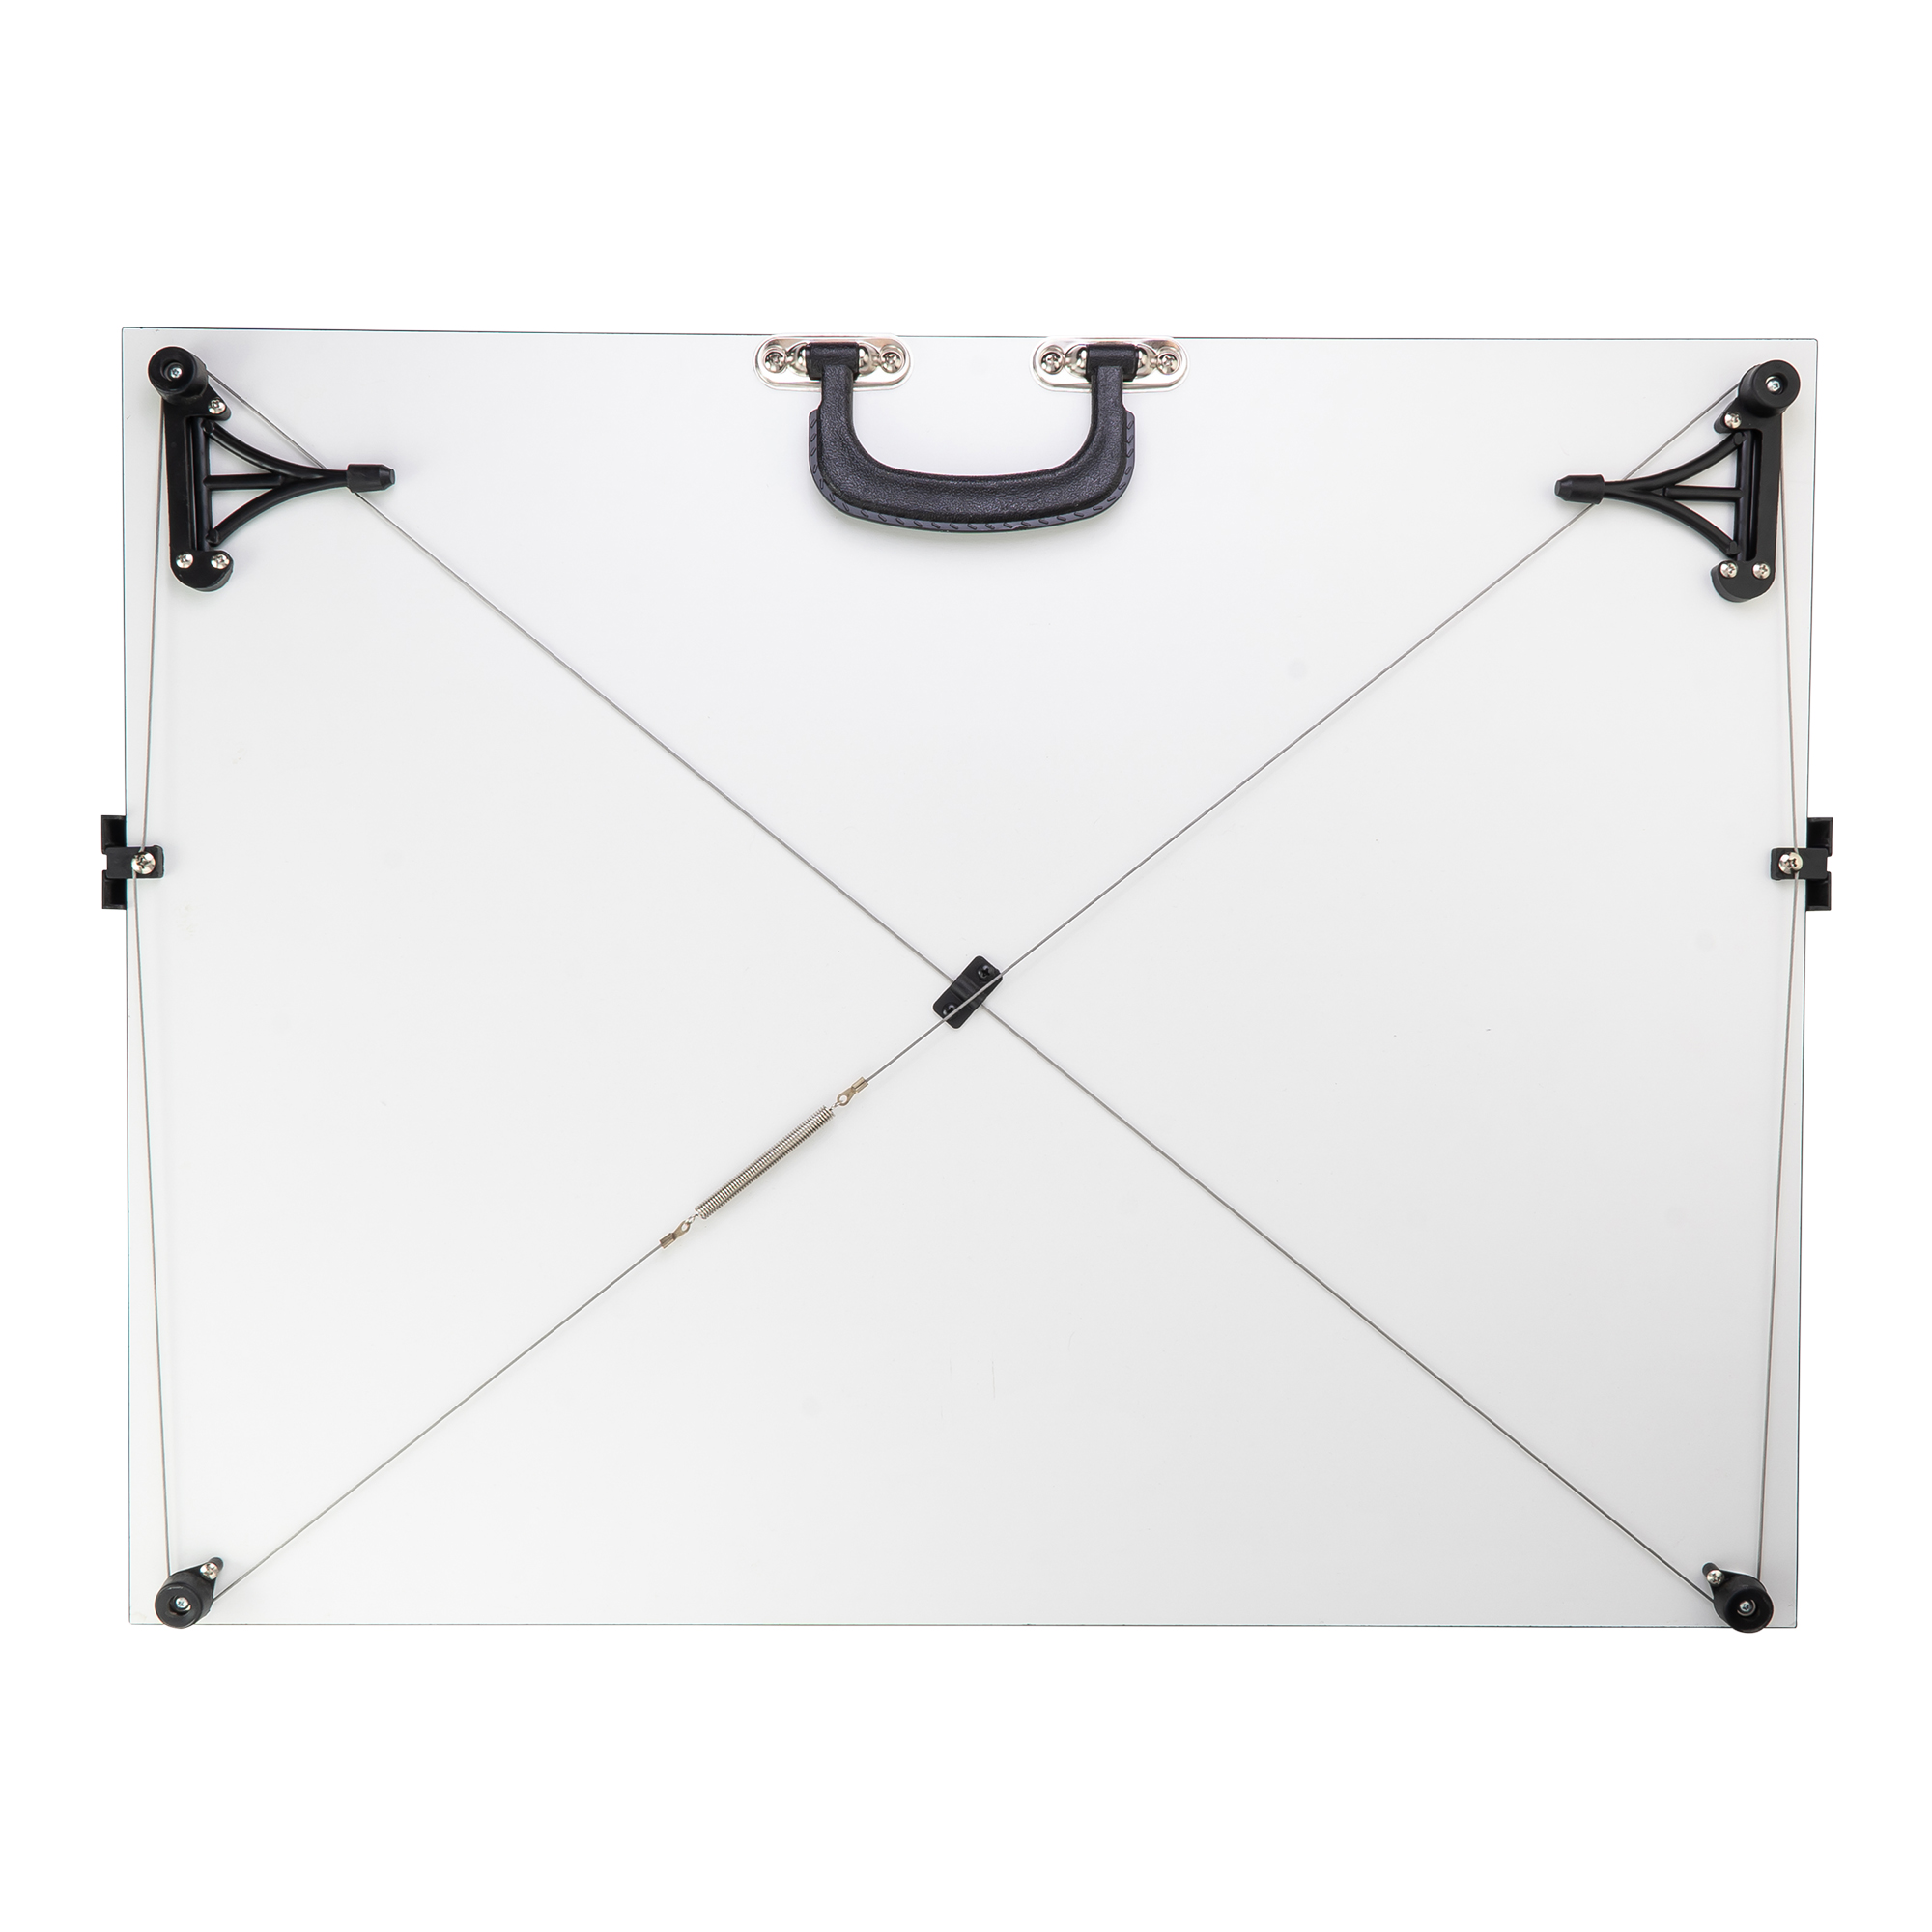 the stb drafting drawing board by pacific arc, made for professional